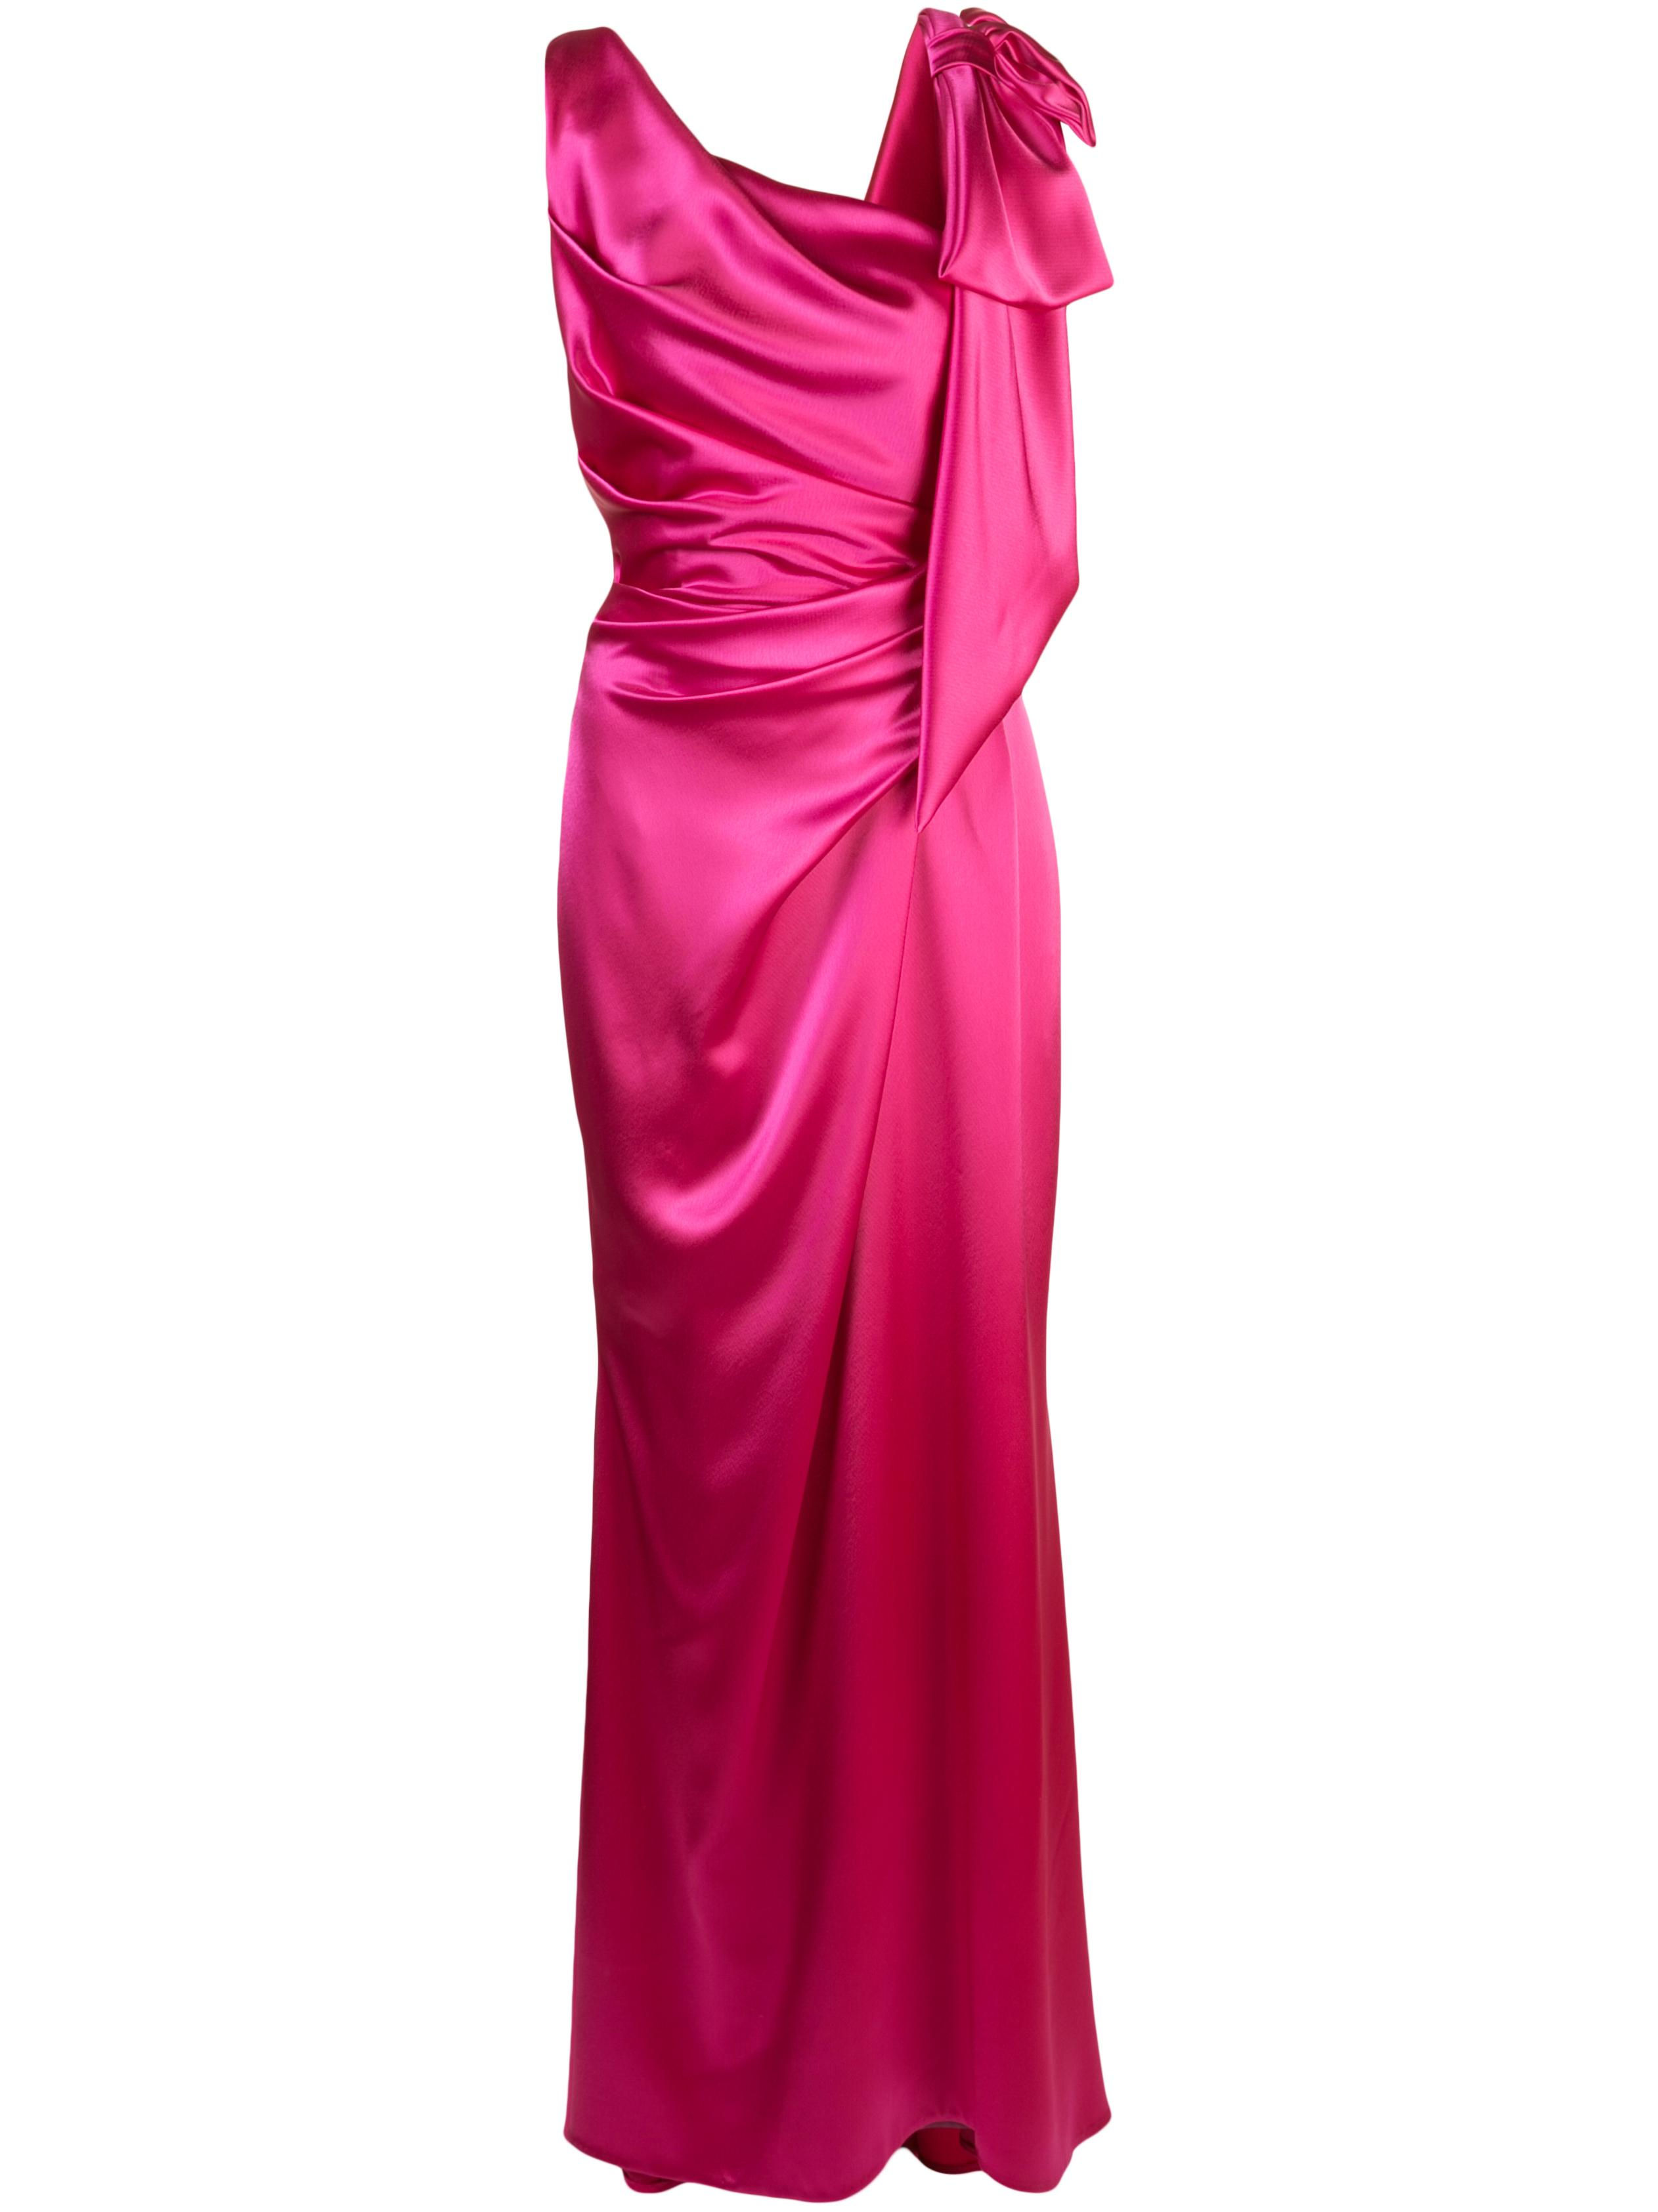 S/Less Shiny/Matte Crepe Gown W/Bow Item # SOL-1